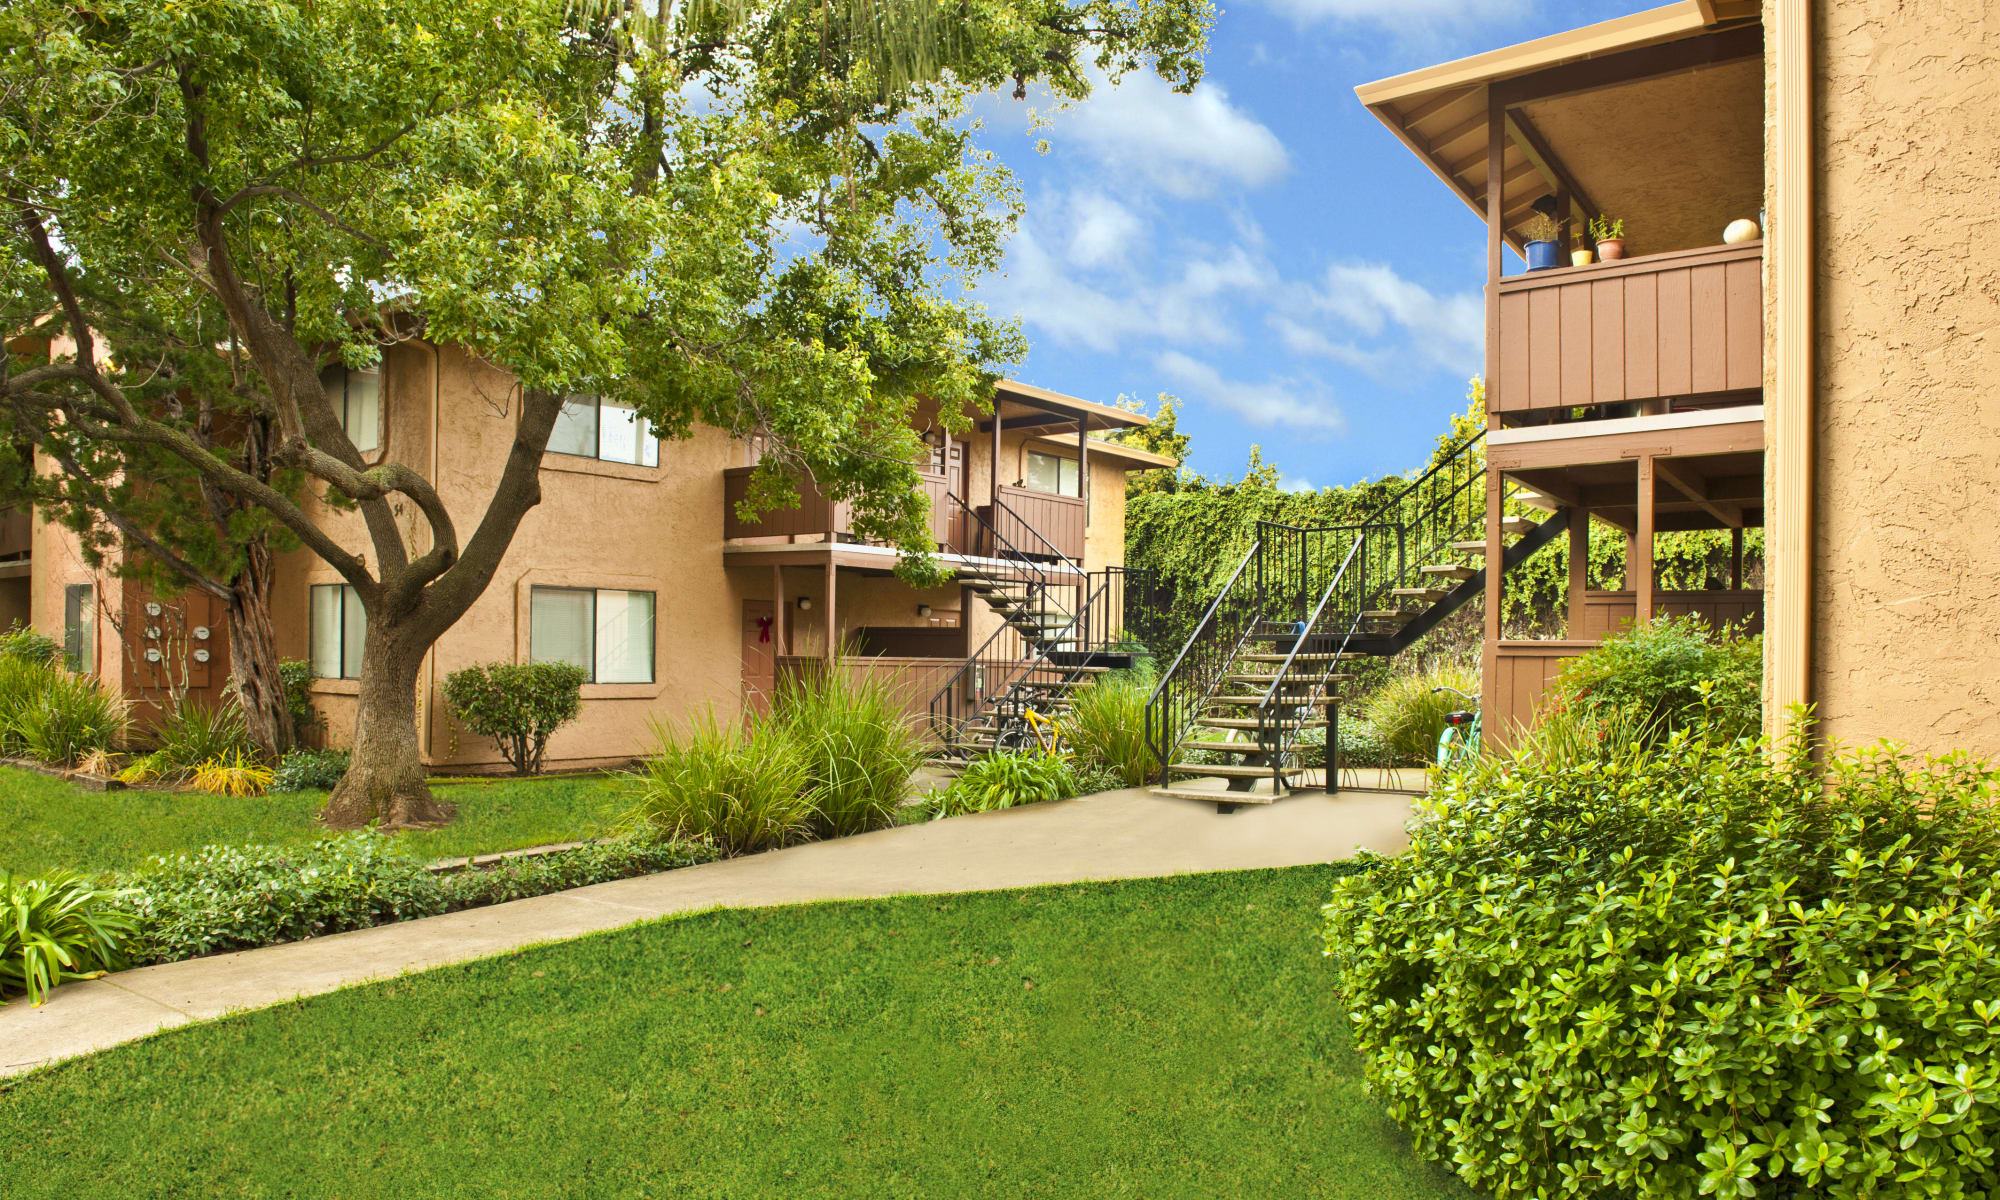 Pine Tree Apartments in Chico, California